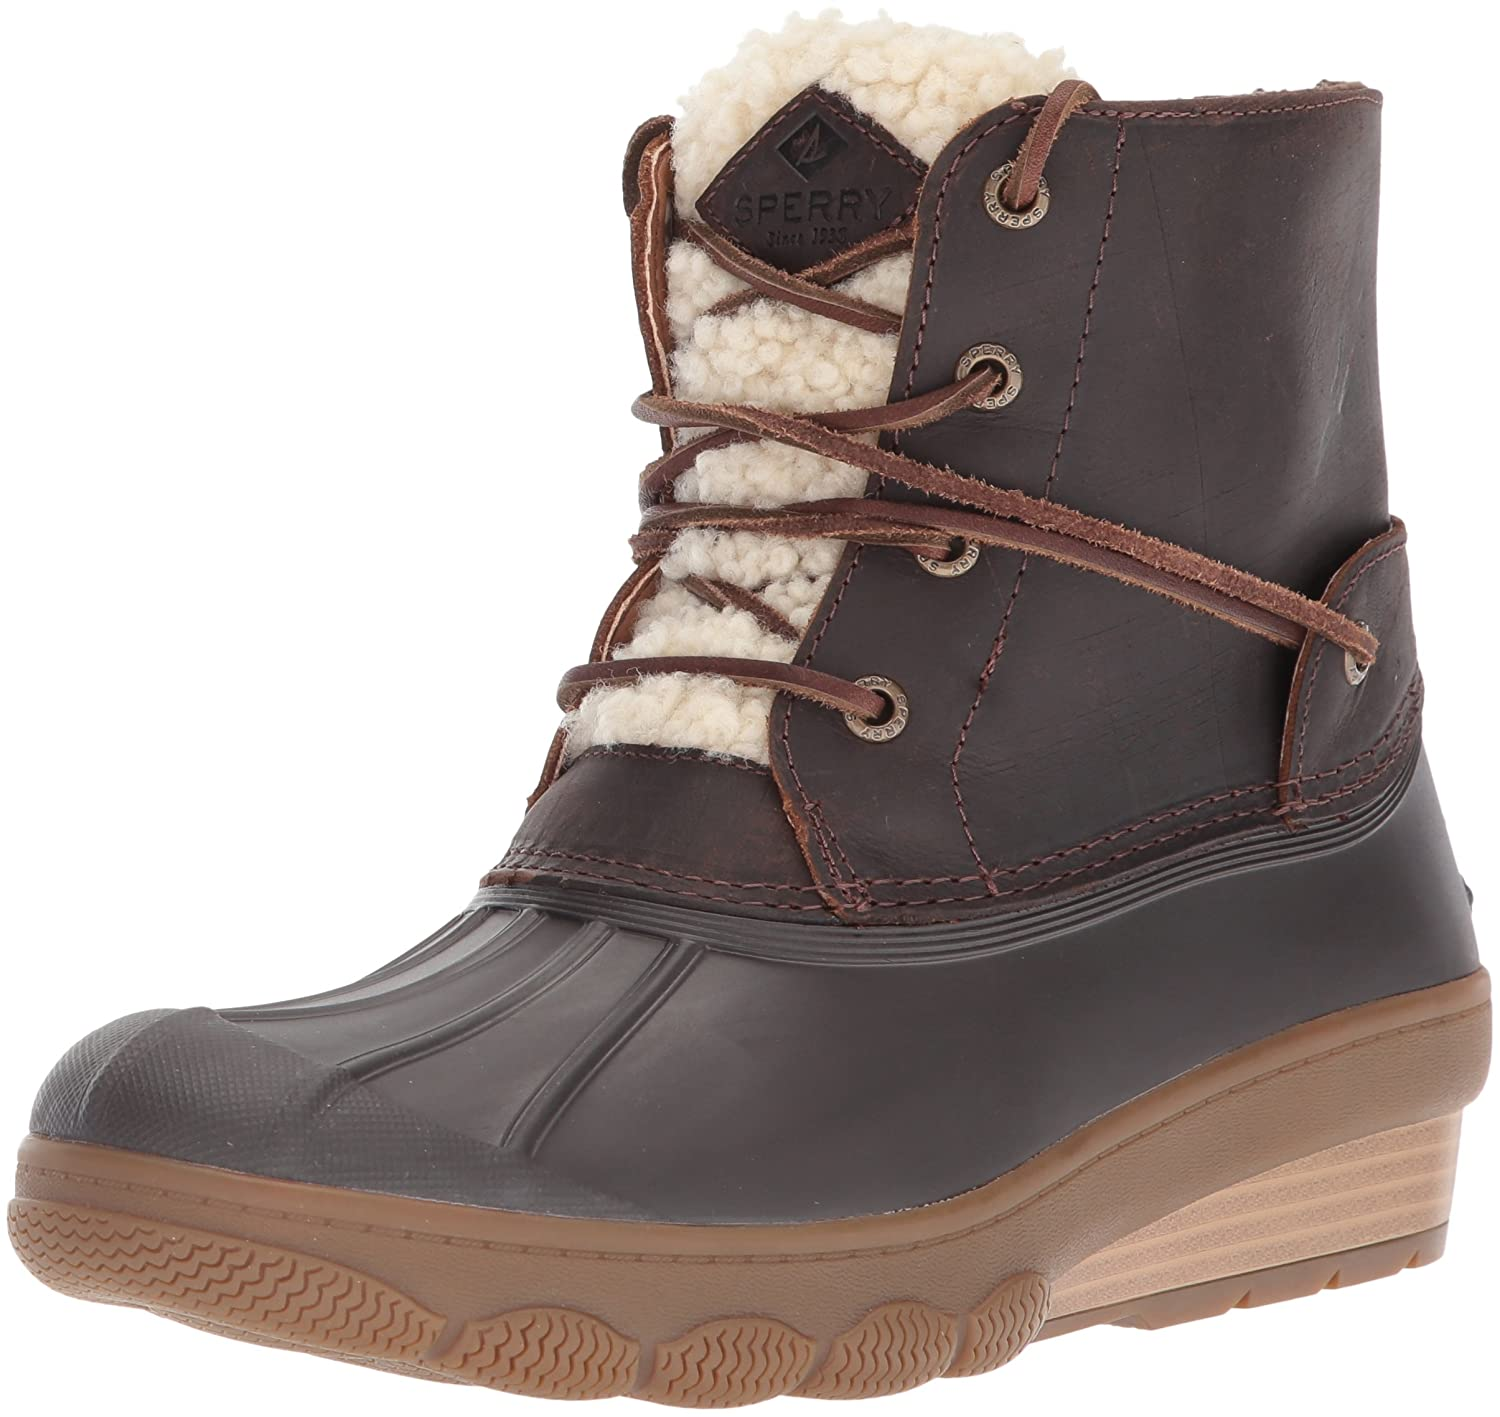 Sperry Top-Sider Women's Saltwater Wedge Tide Fur Rain Boot B01N7KAMPG 6.5 B(M) US|Brown